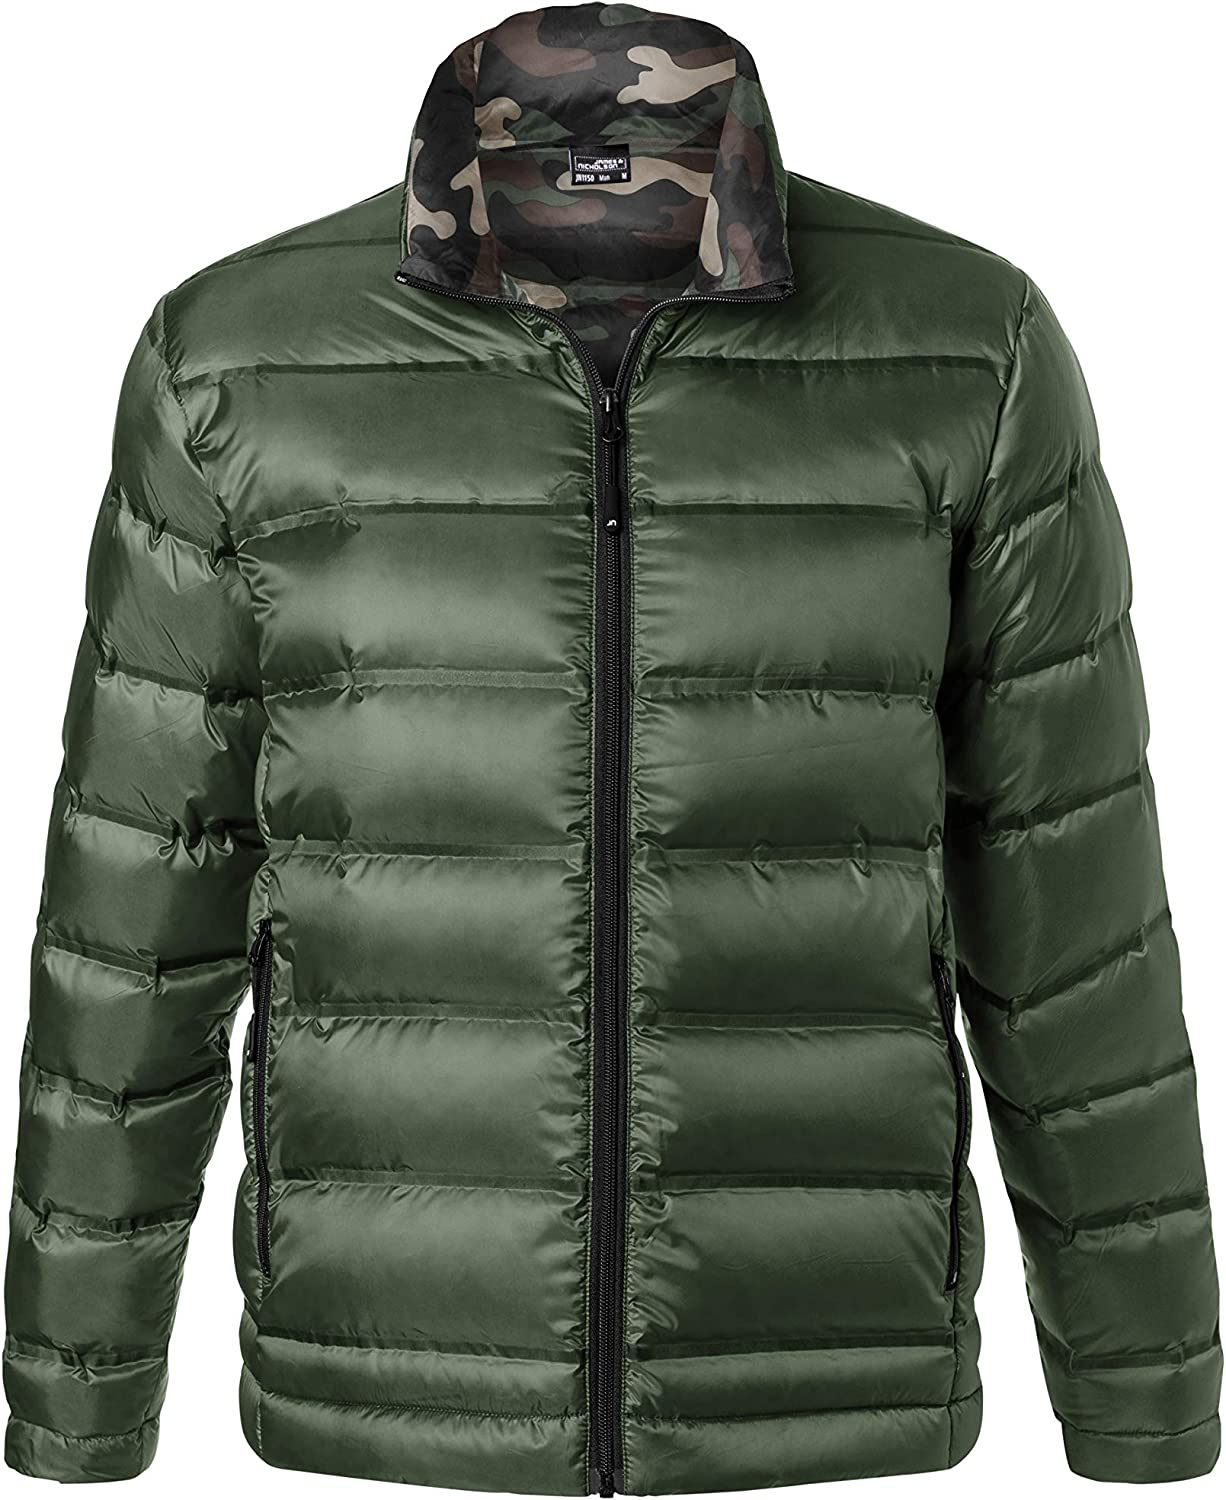 James /& Nicholson Mens Padded Jacket Chaqueta para Hombre